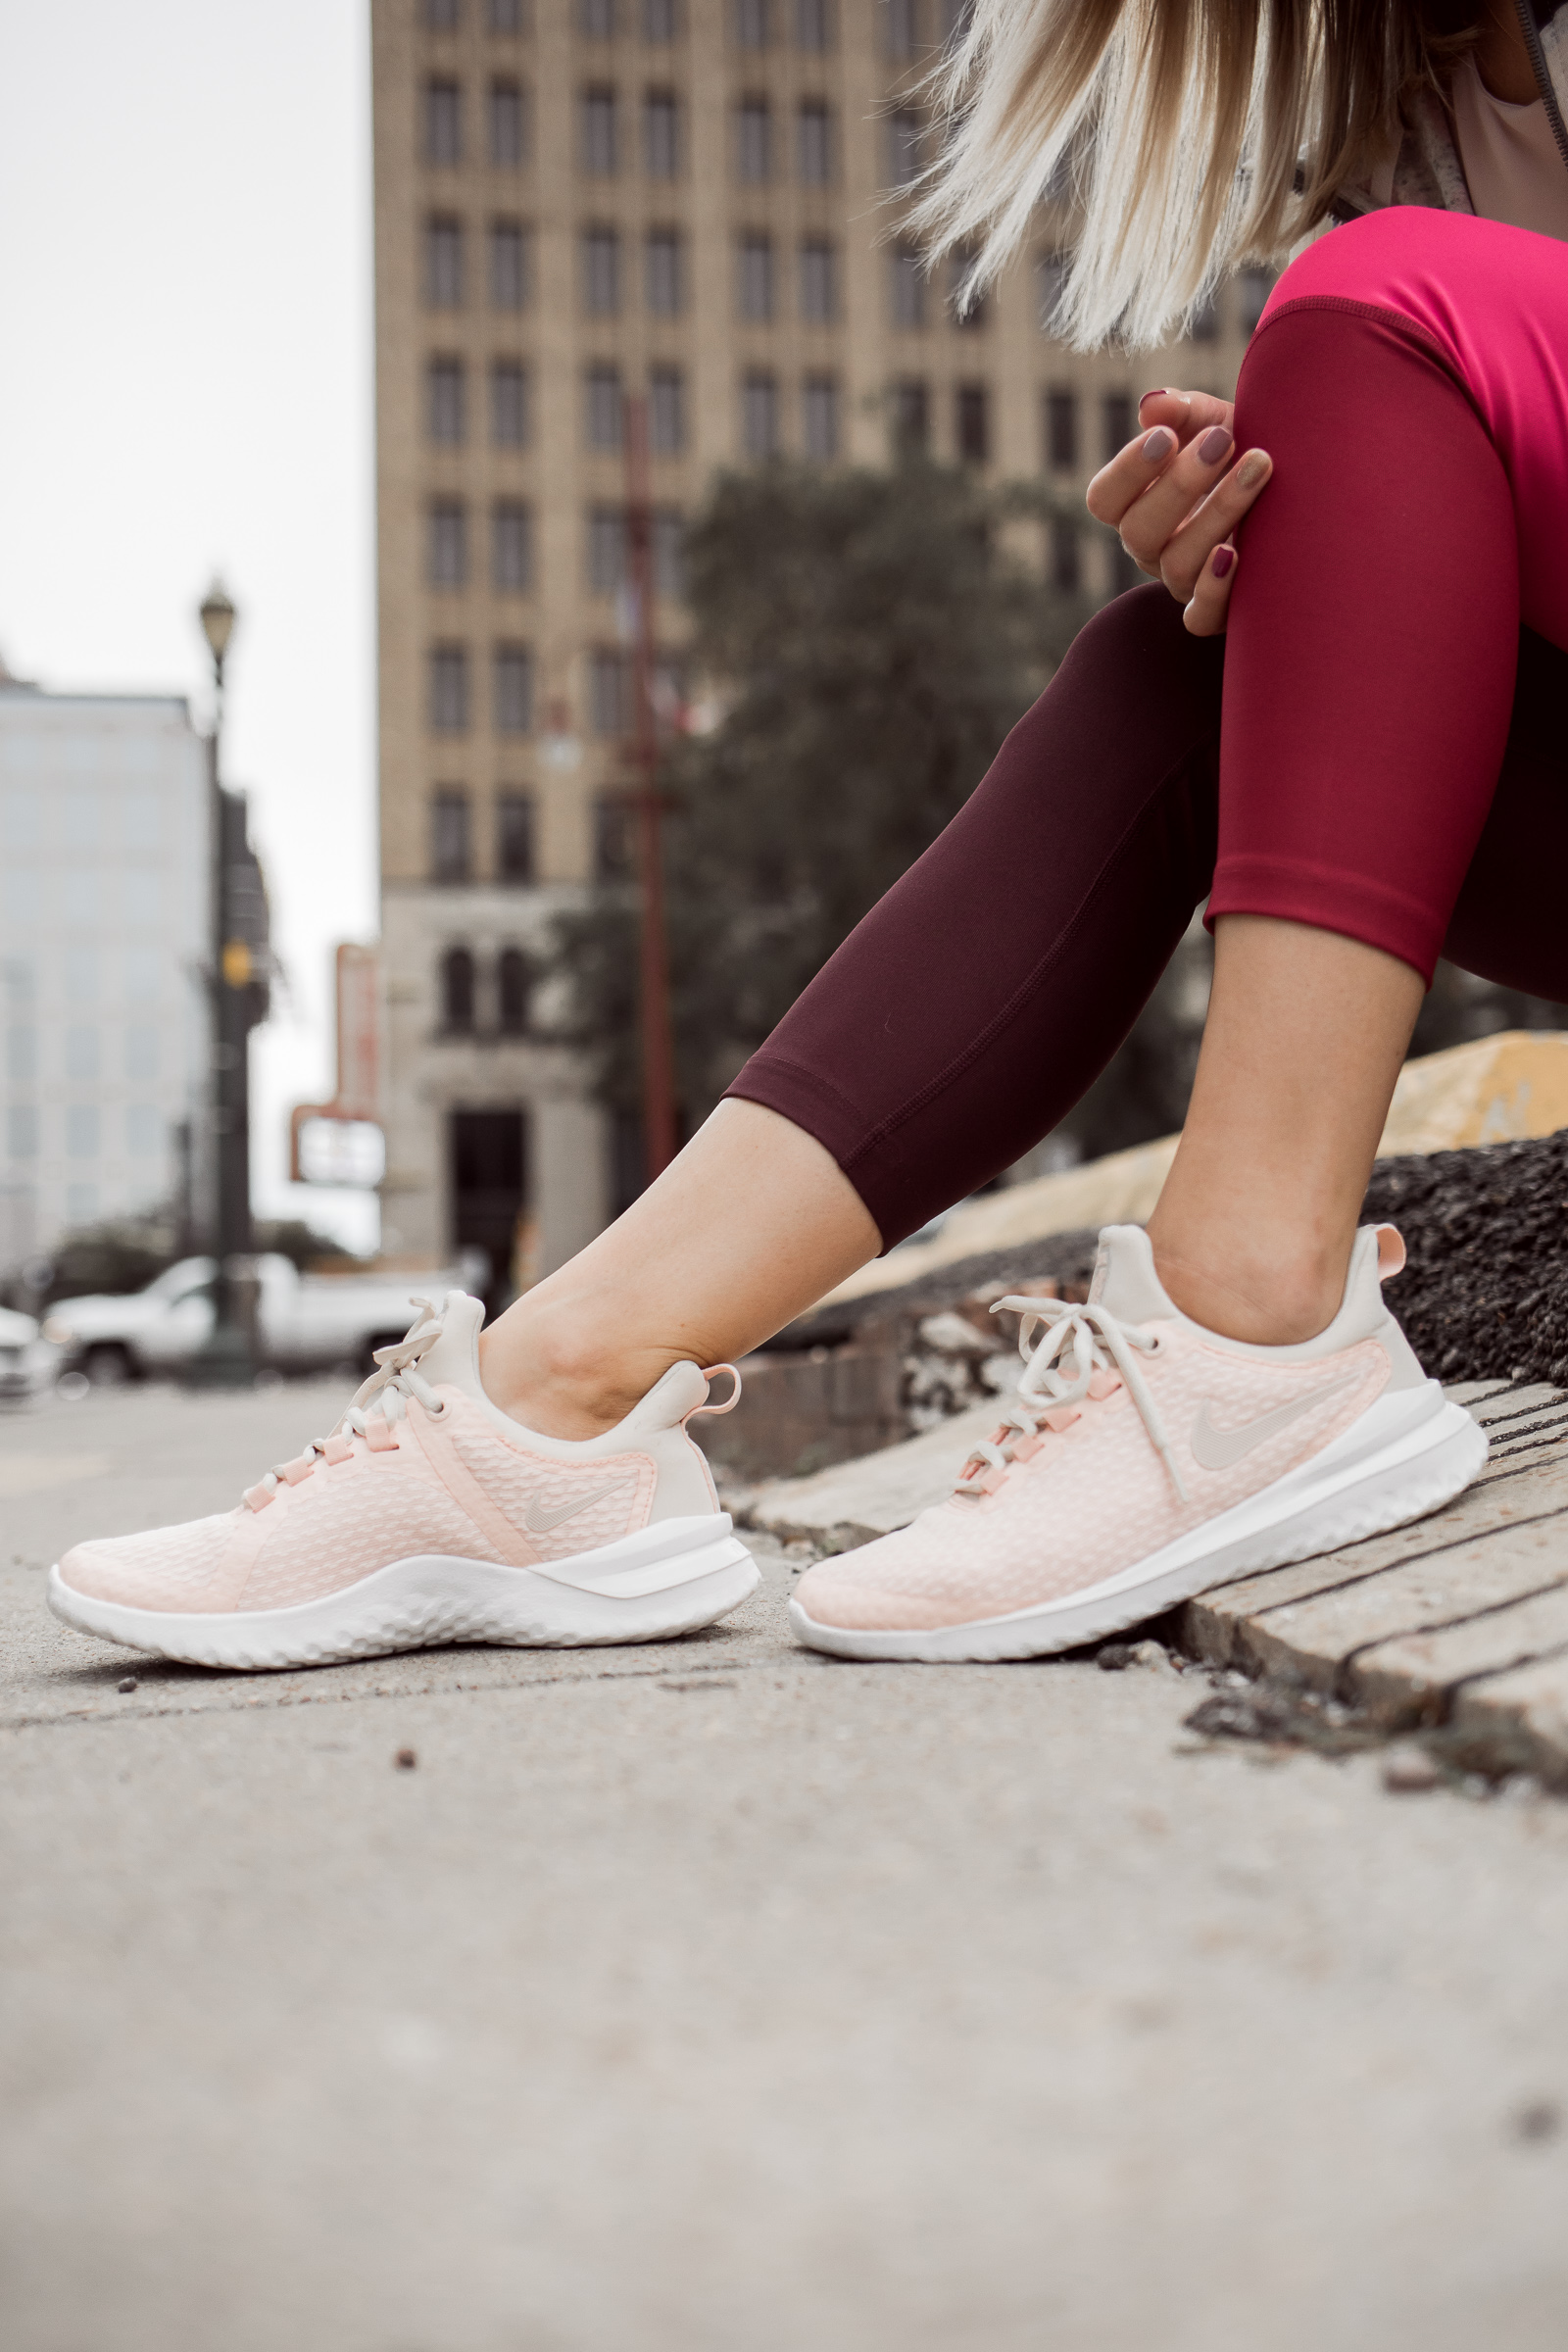 Houston Fashion blogger Uptown with Elly Brown wears pink running shoes